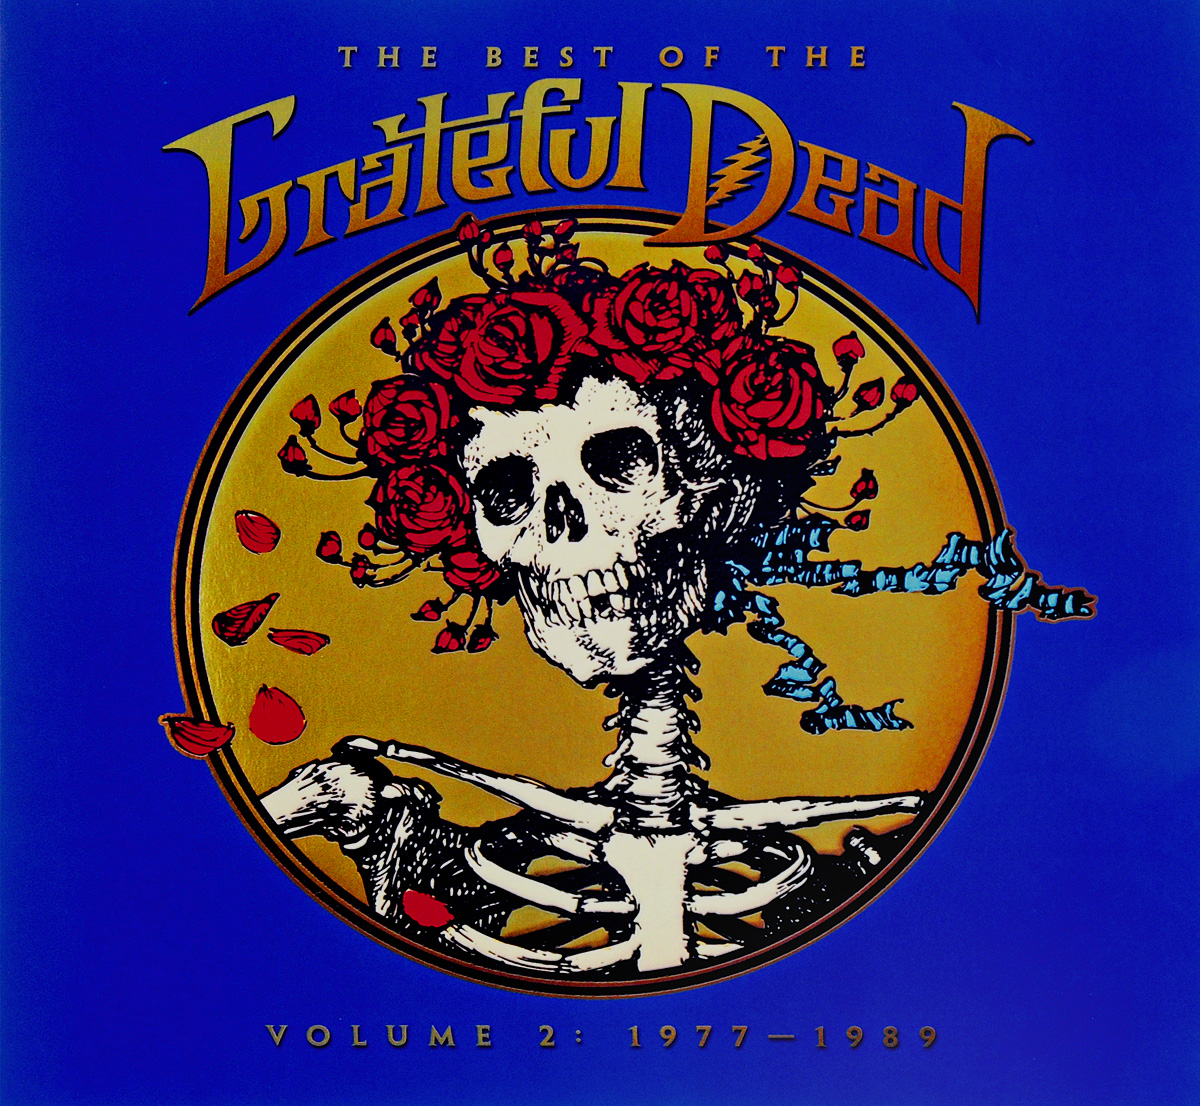 The Grateful Dead. The Best Of The Grateful Dead Volume 2: 1977 - 1989 (LP) the grateful dead grateful dead grateful dead records collection 5 lp